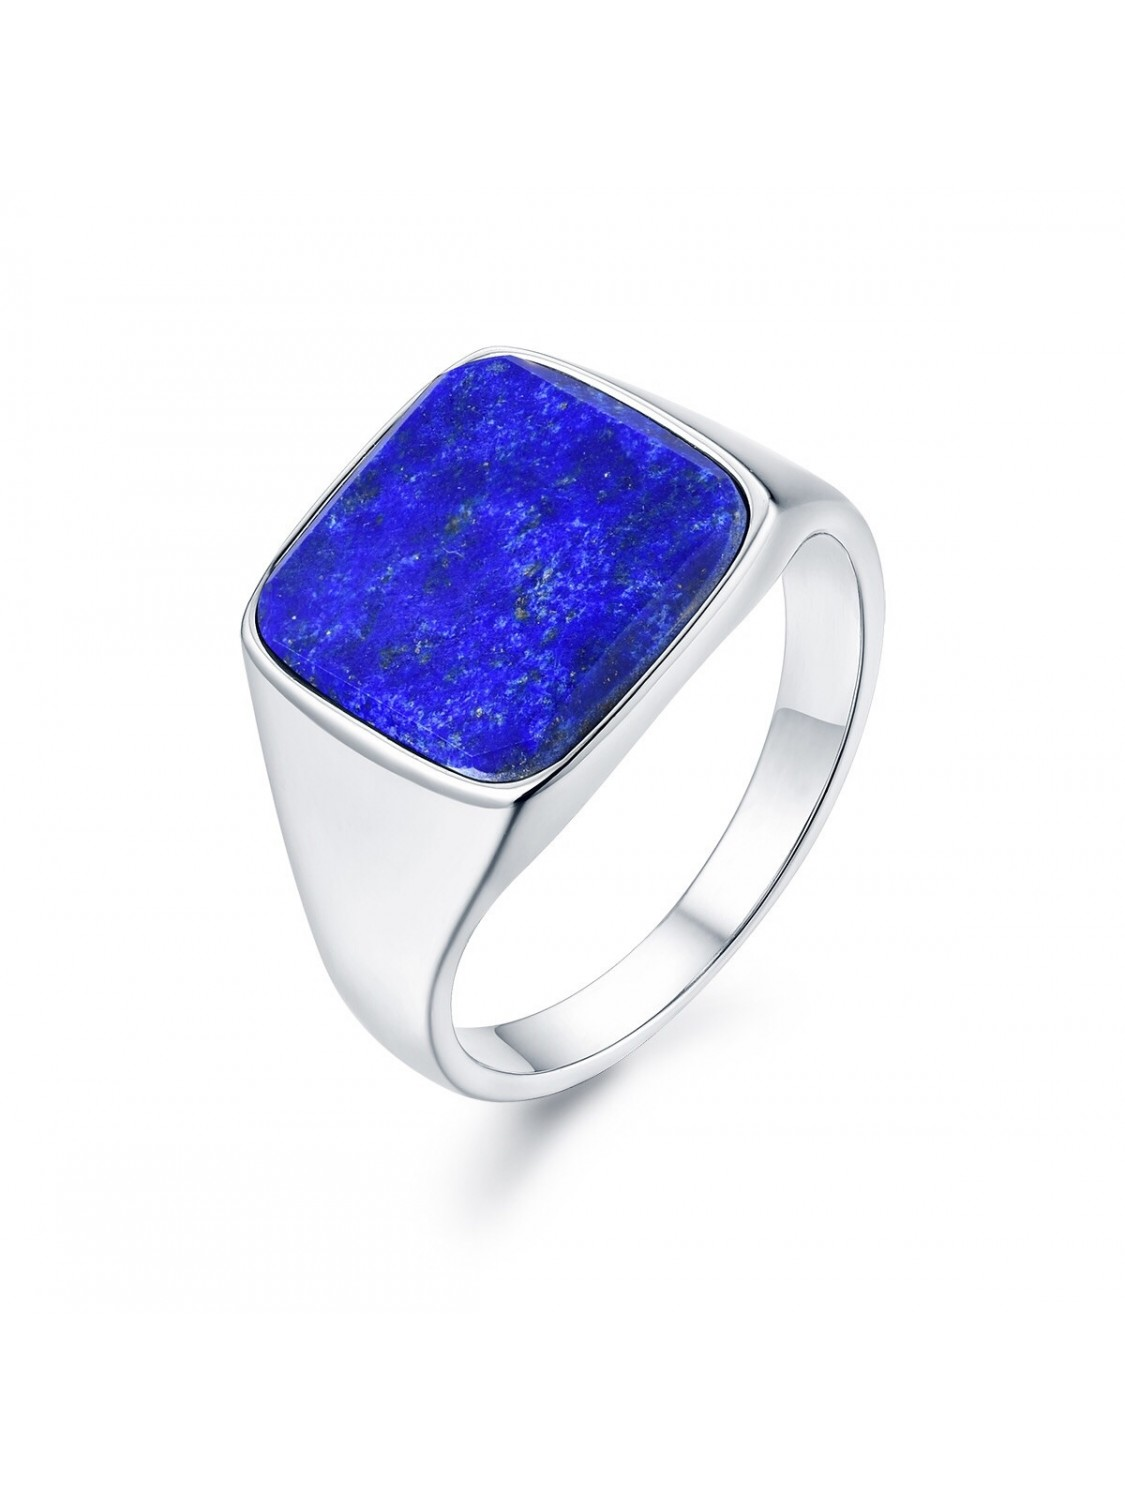 Northern Legacy Lapis Signature Ring Silver-31